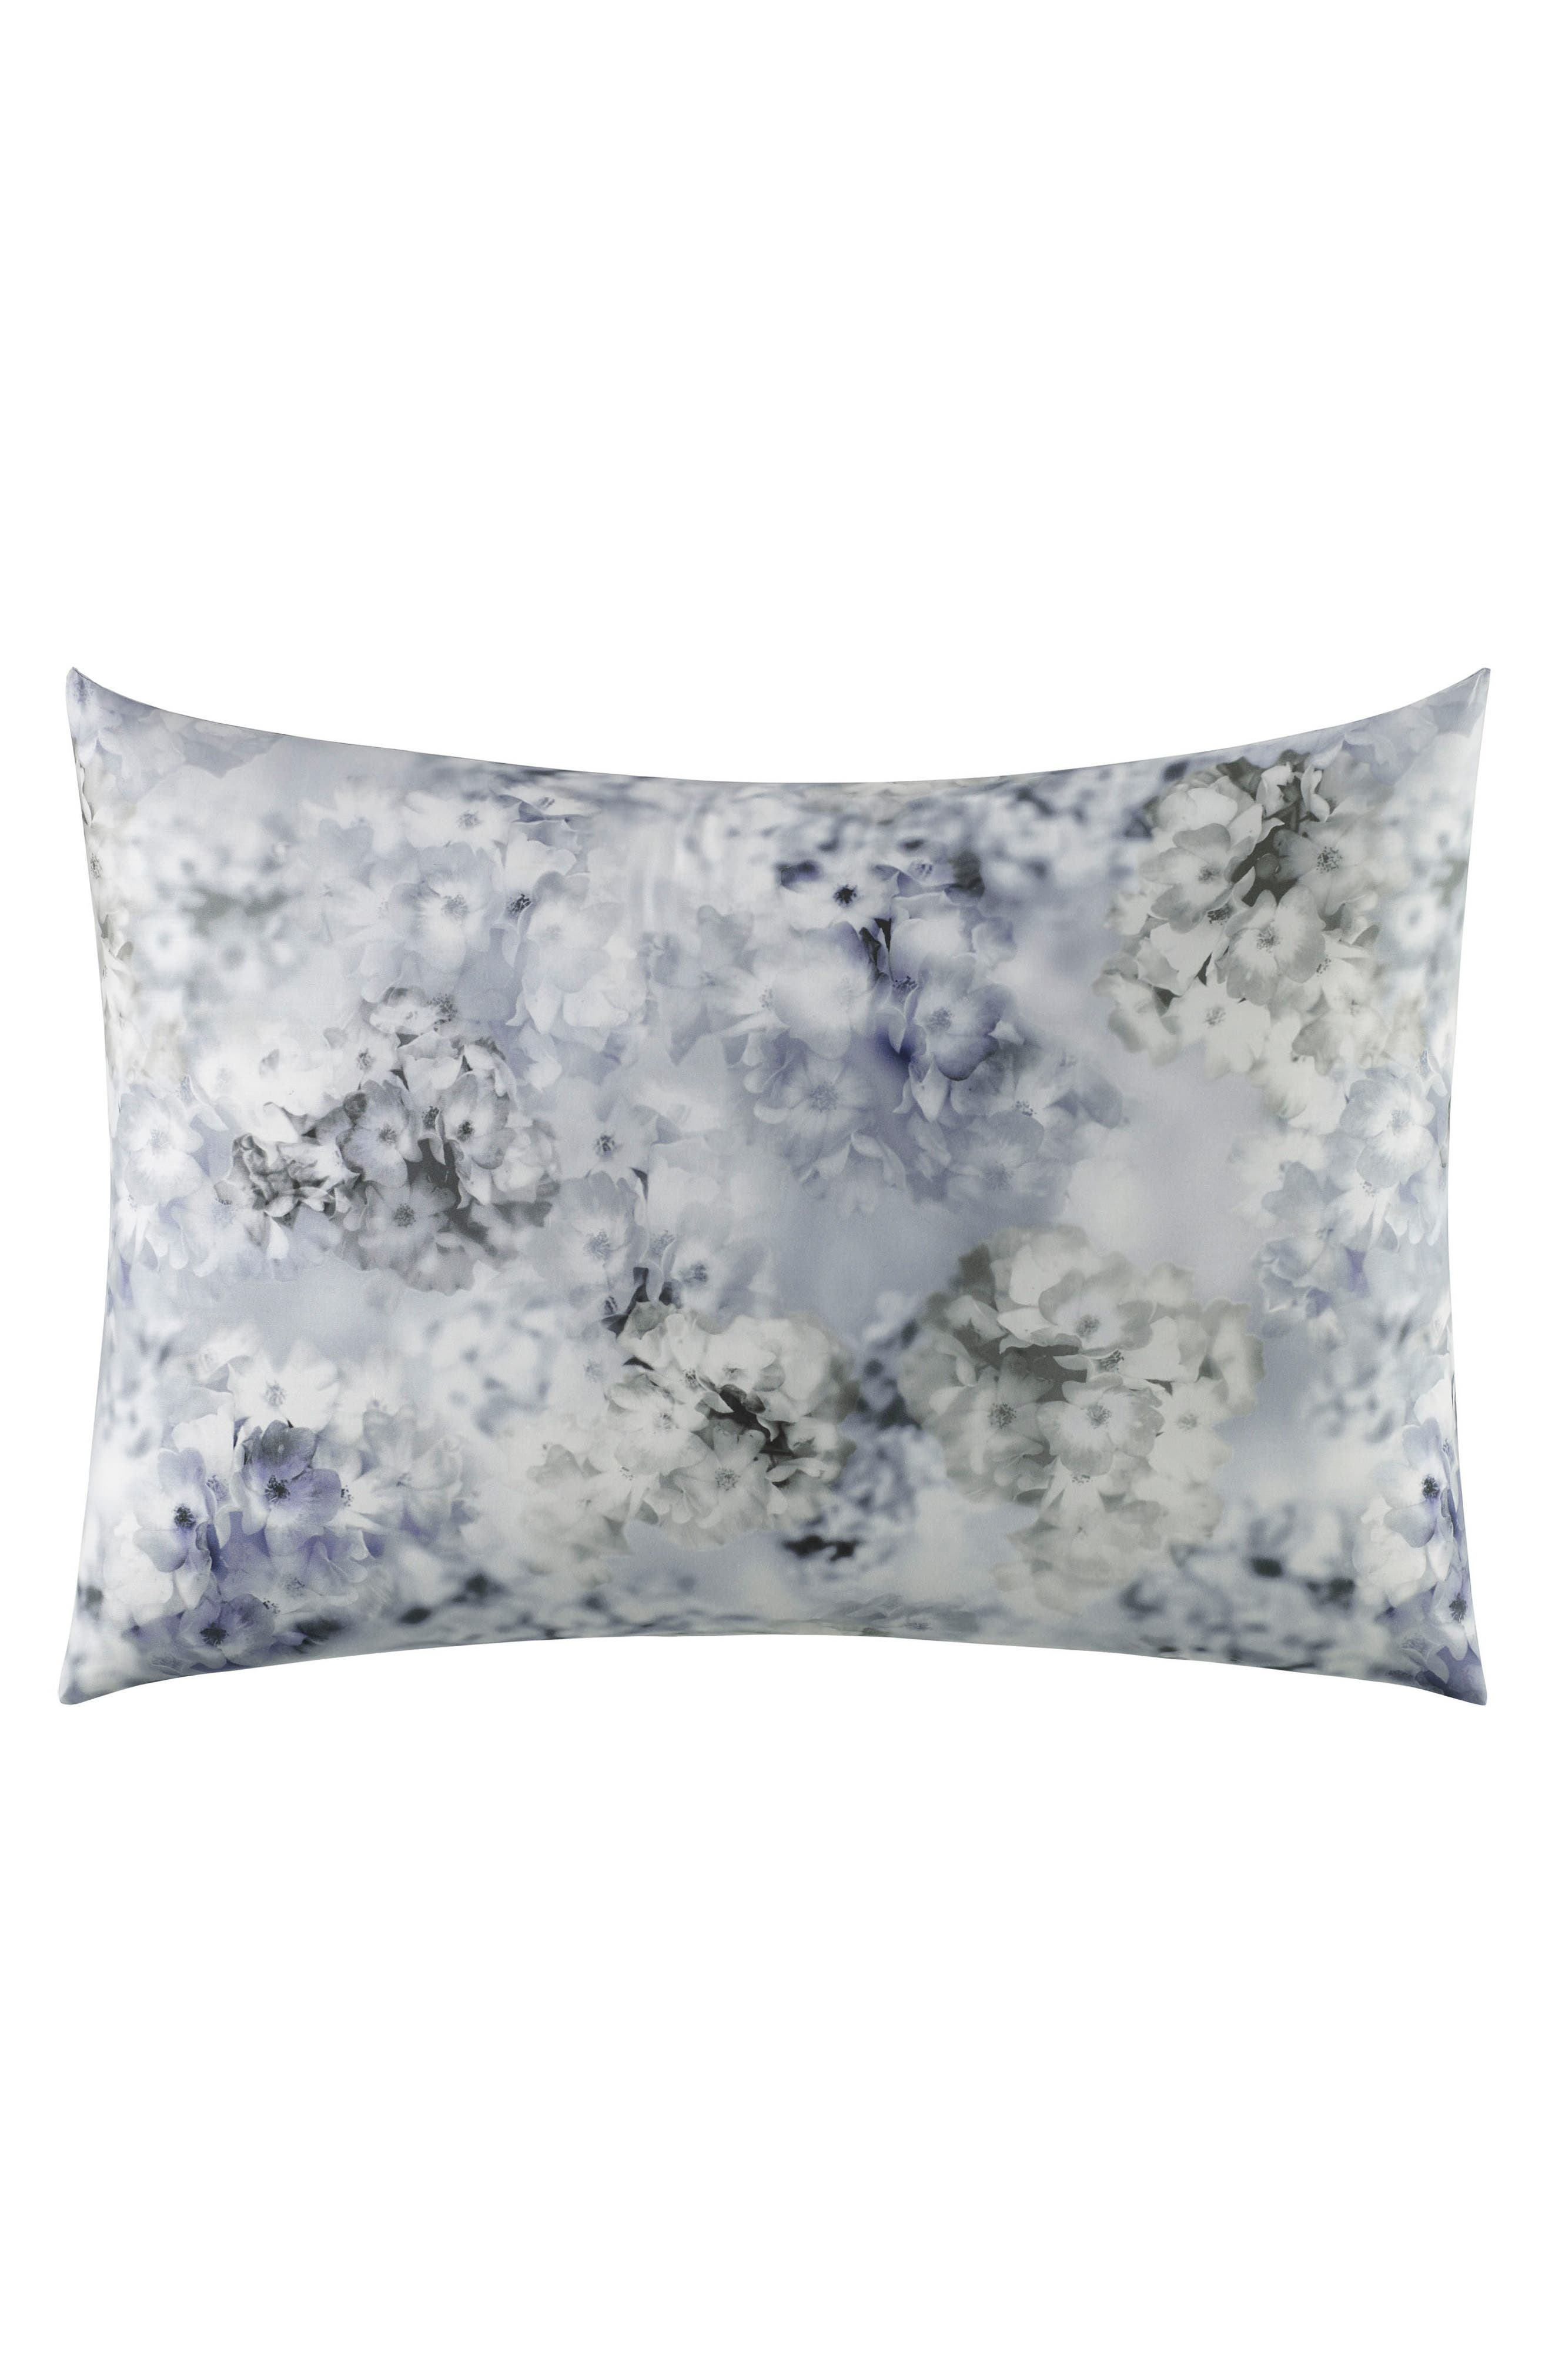 Alternate Image 1 Selected - Vera Wang Veiled Bouquet 300 Thread Count Sham